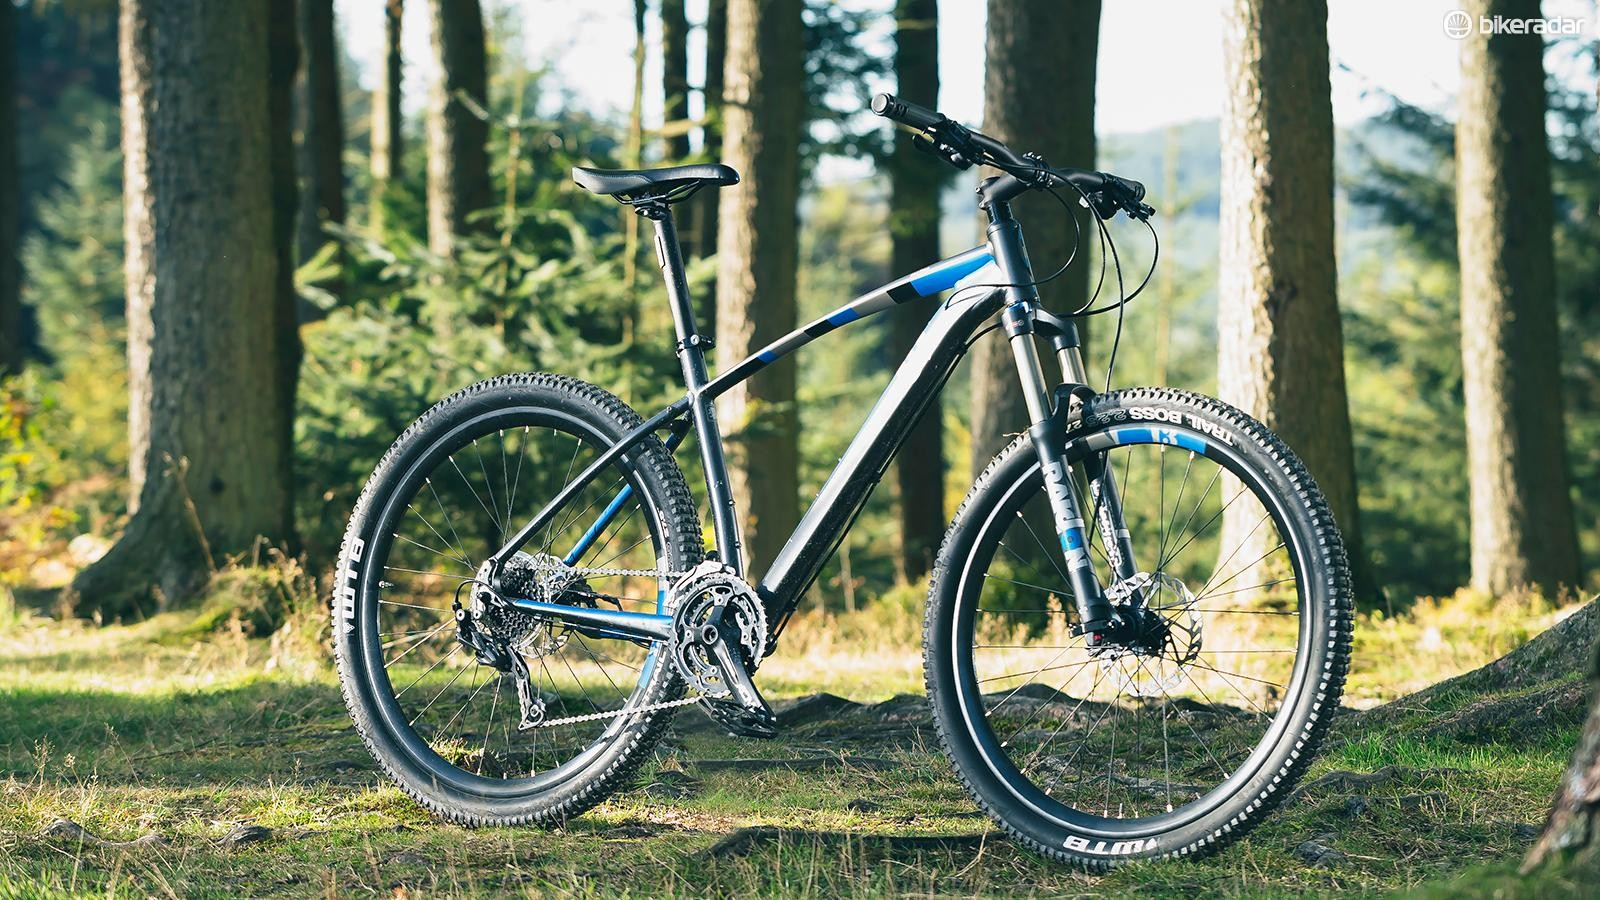 The Incline Alpha is a classy, fun little hardtail that offers near-unbeatable value